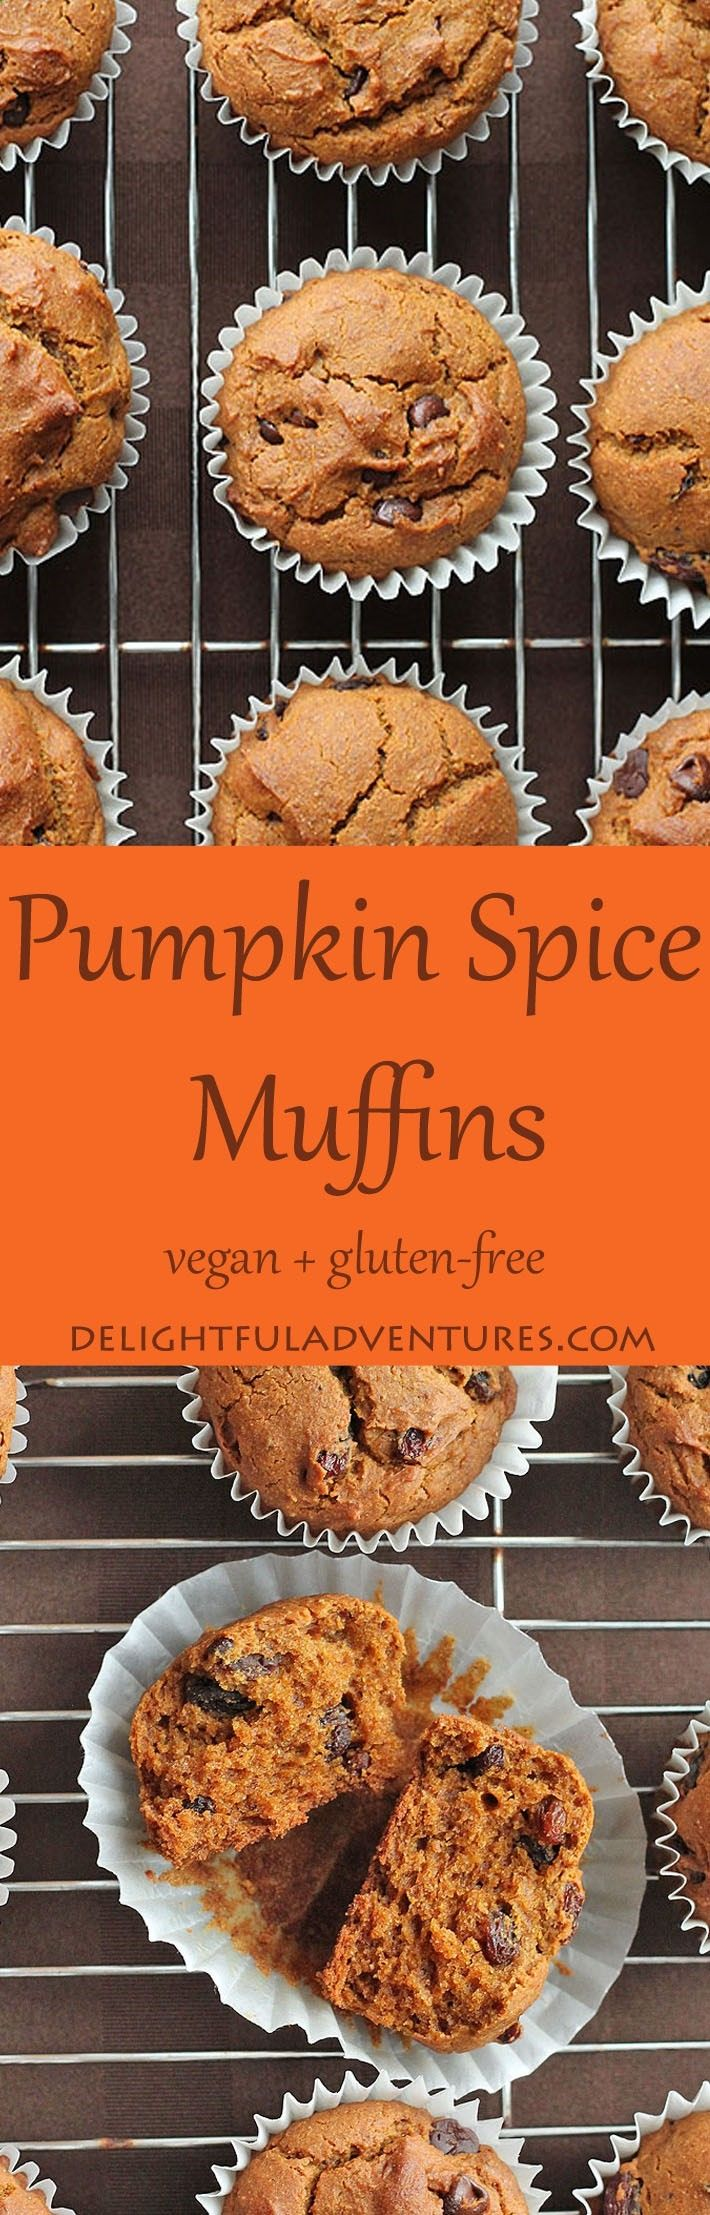 Vegan gluten free pumpkin spice muffins that are so easy to make and so delicious, youll want to make them year-round—not just during the fall.